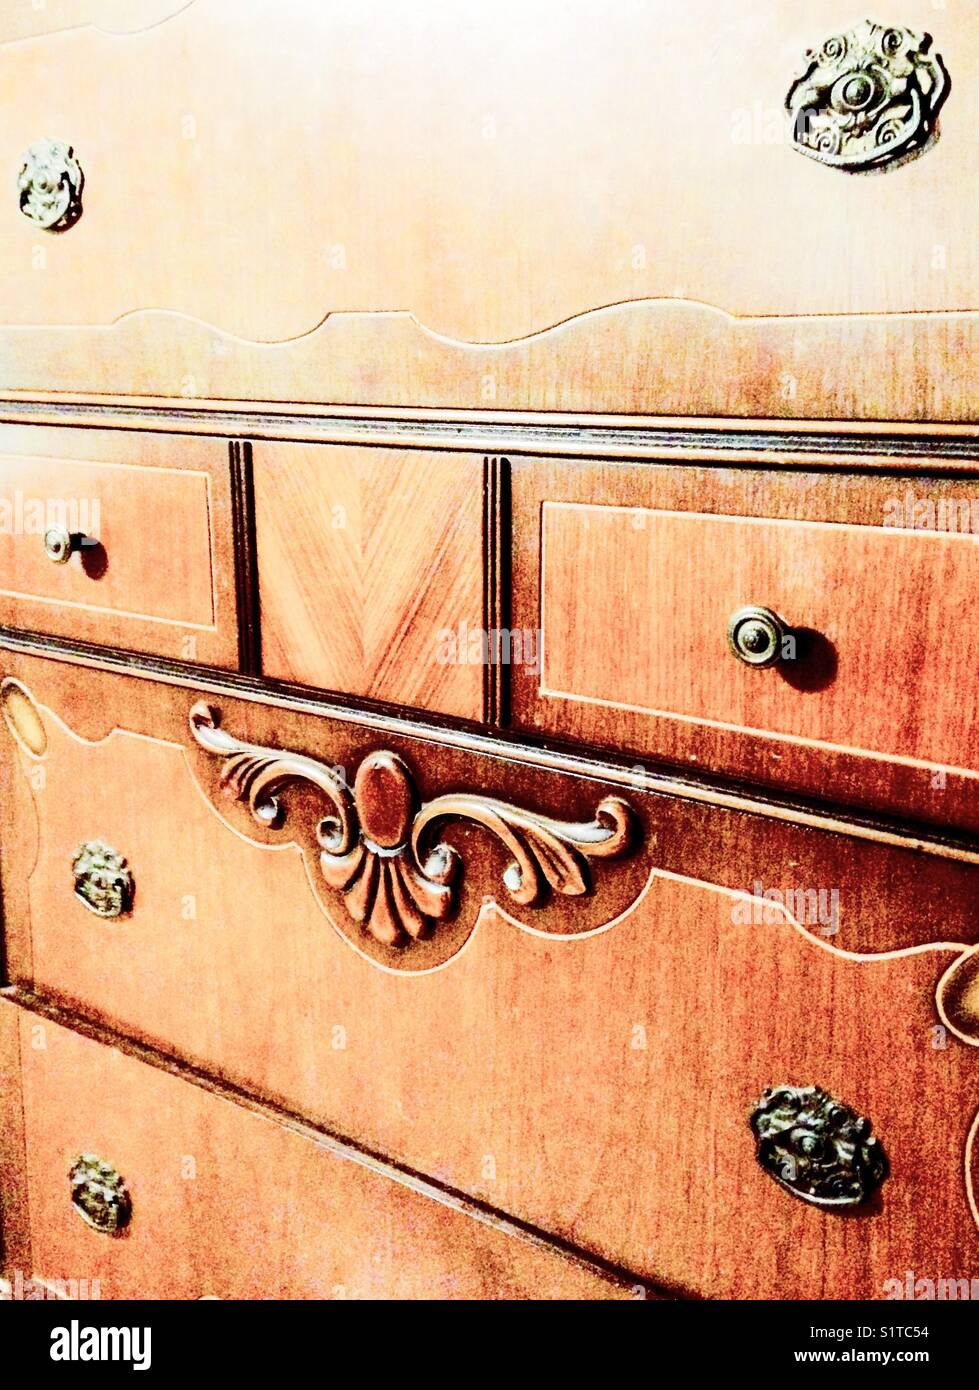 Front of a wooden bedroom chest of drawers - Stock Image